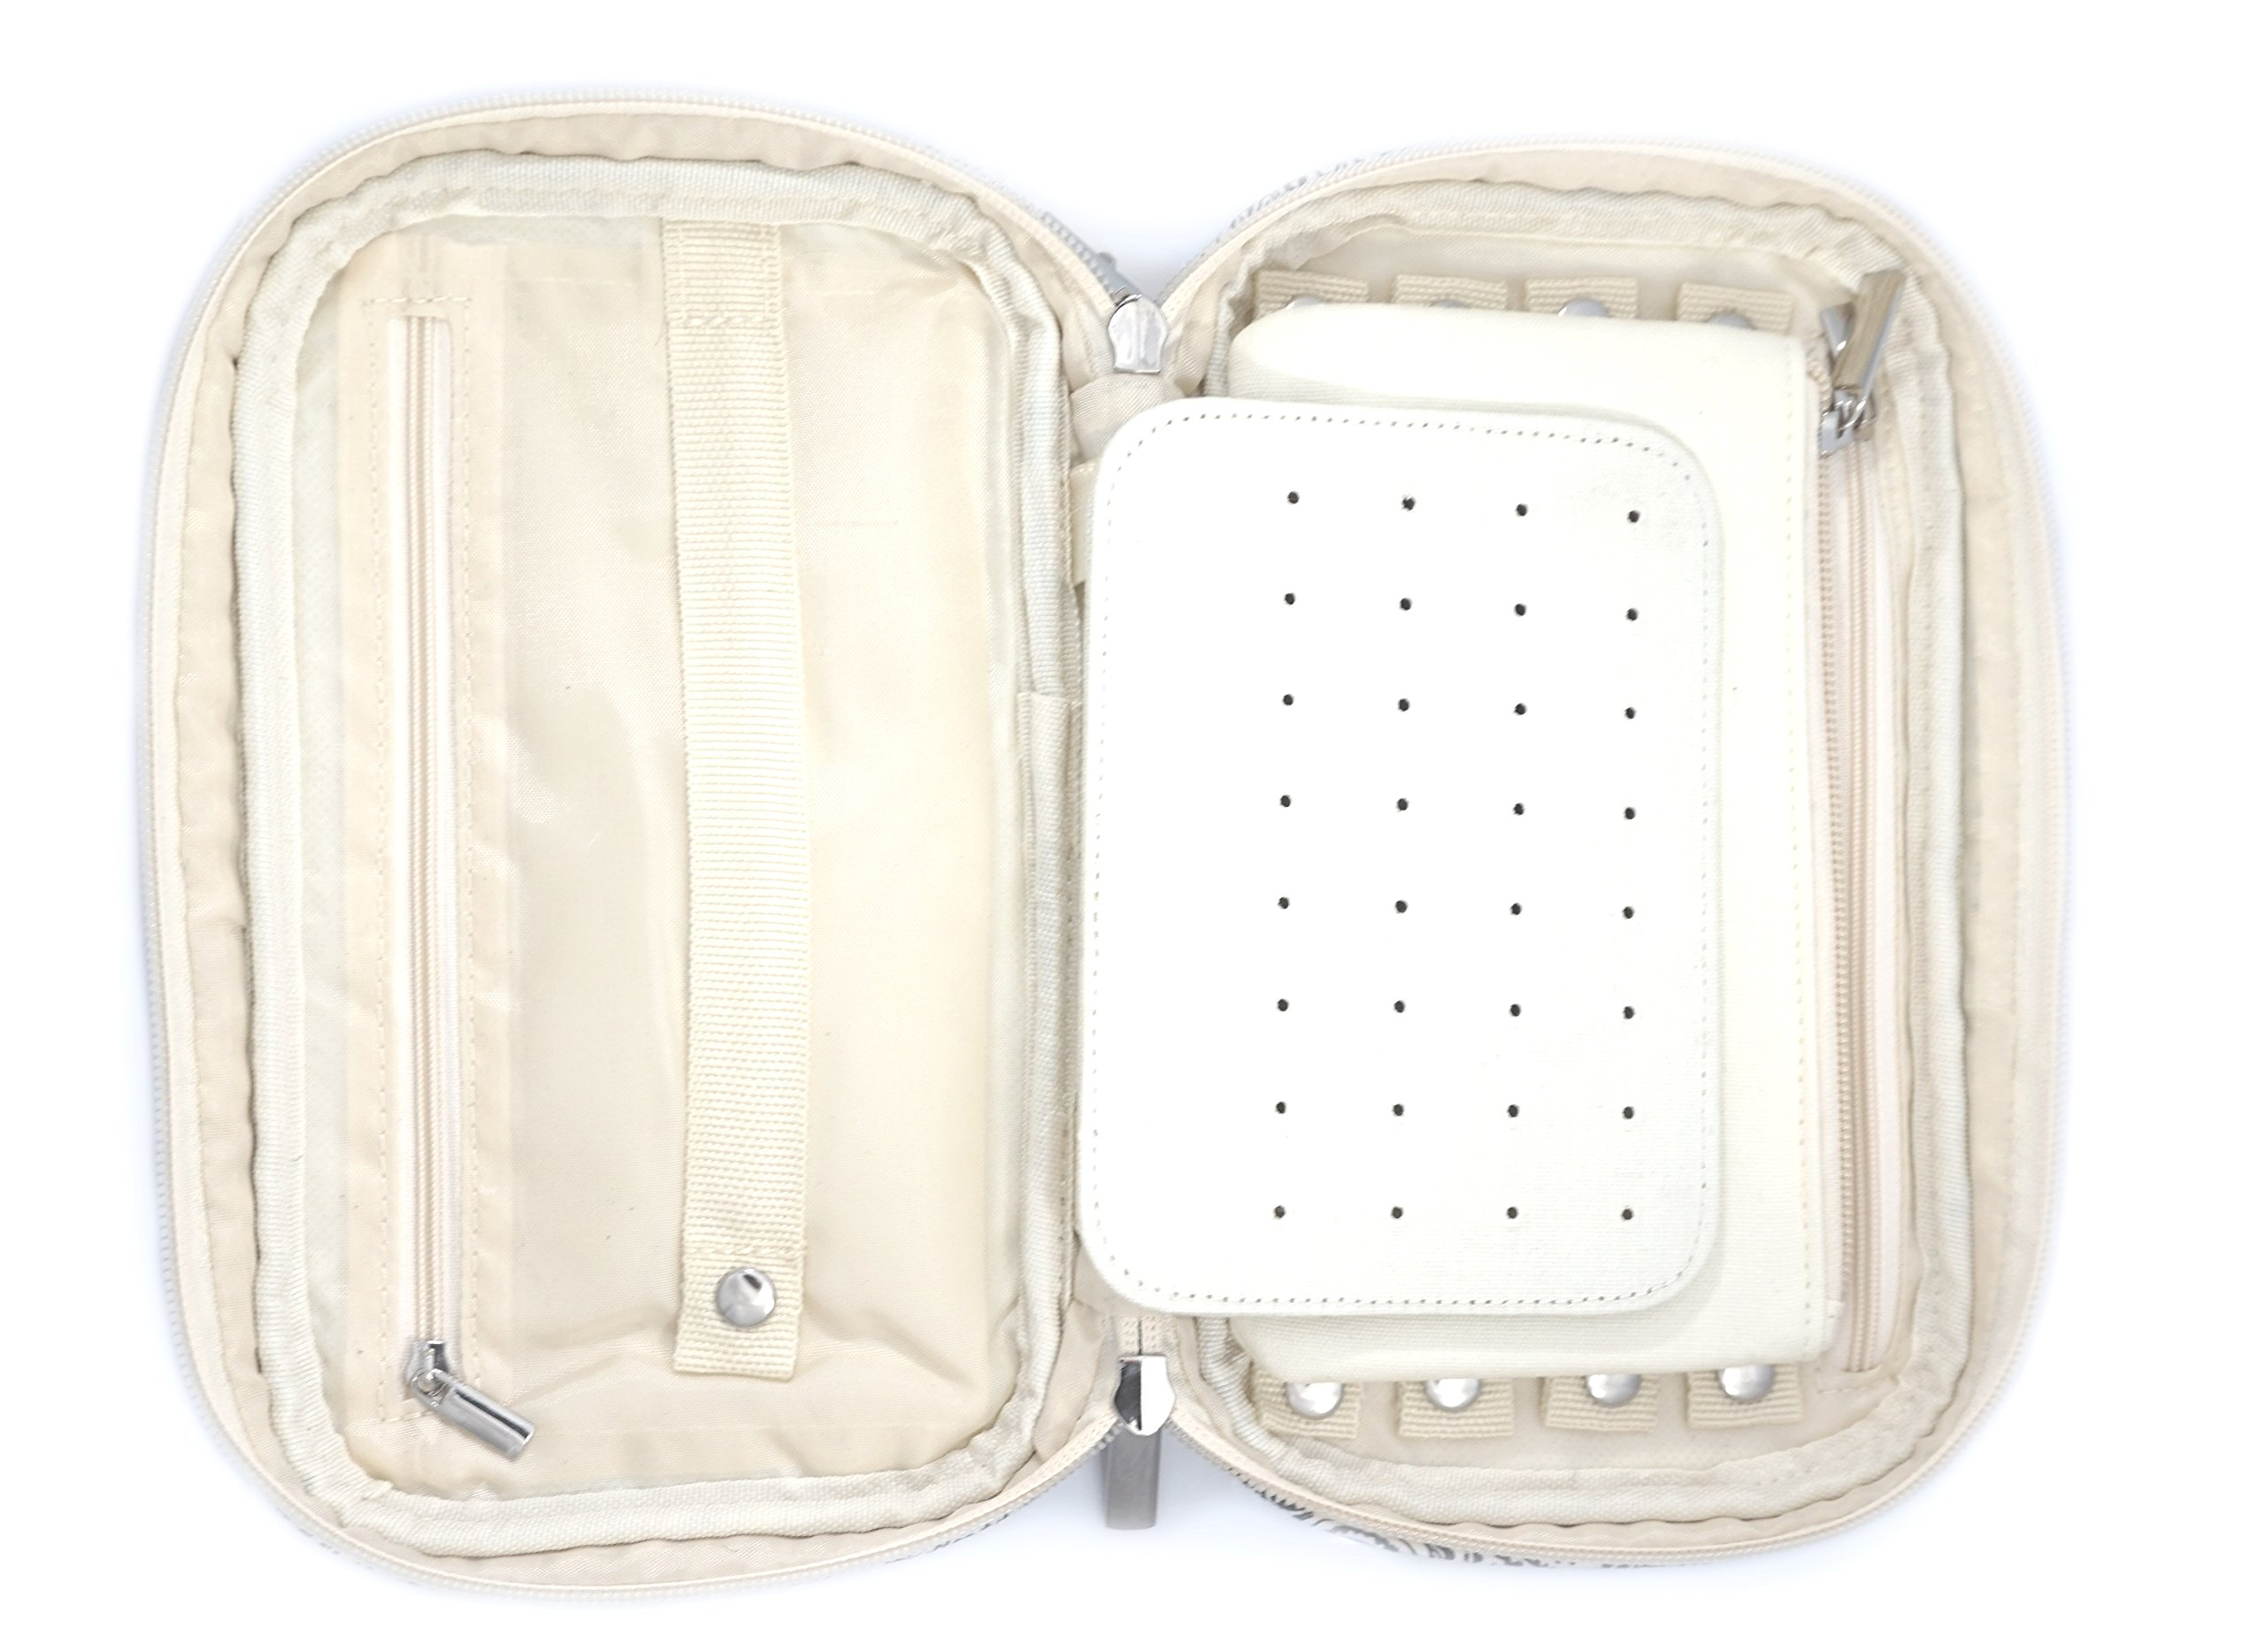 Jewelry & Accessories Travel Organizer Bag Case (Black) by Simple Accessories (Image #9)